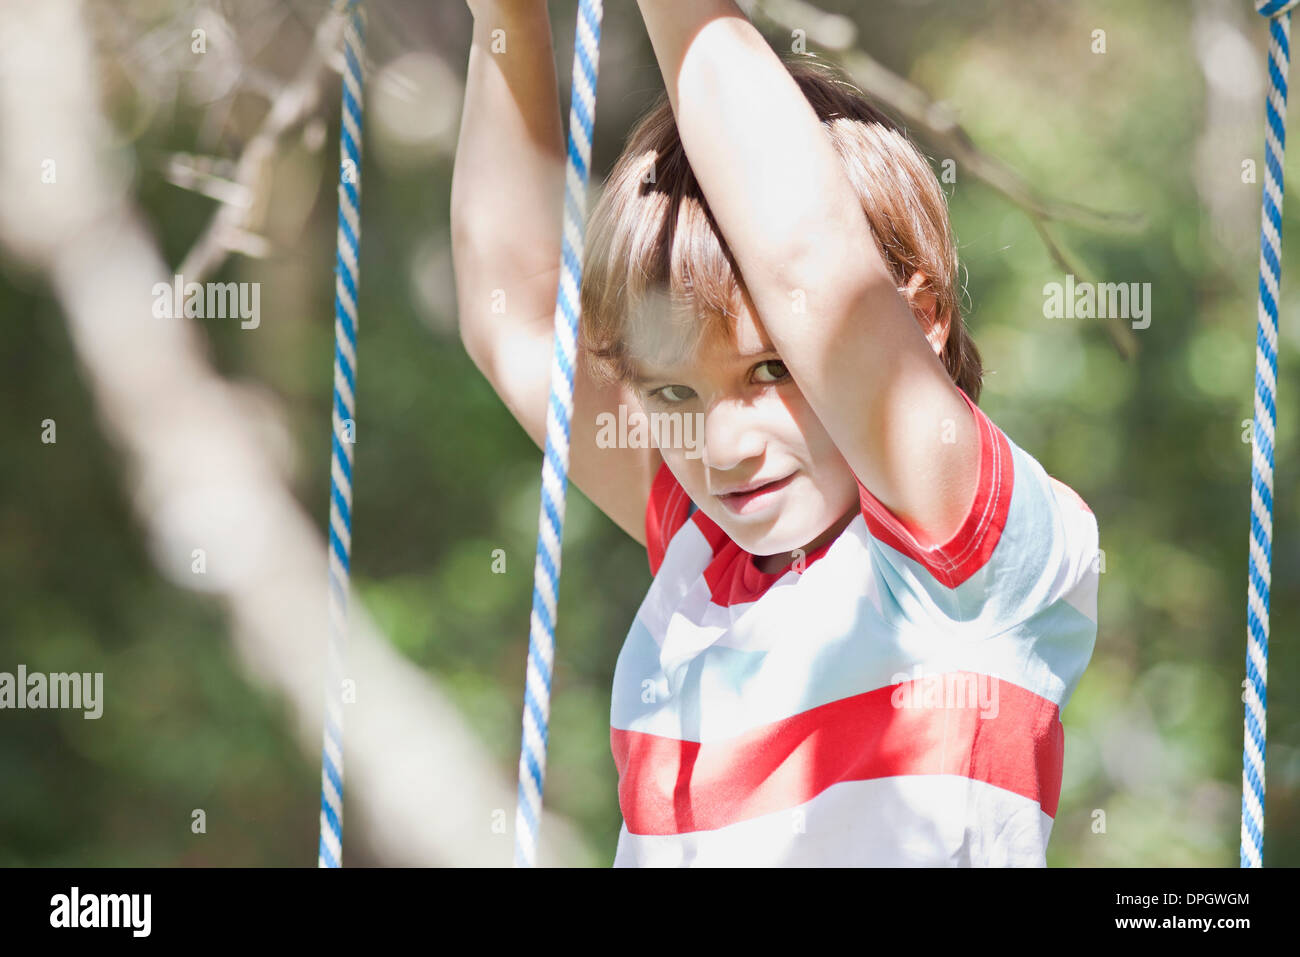 Boy on swing, portrait - Stock Image